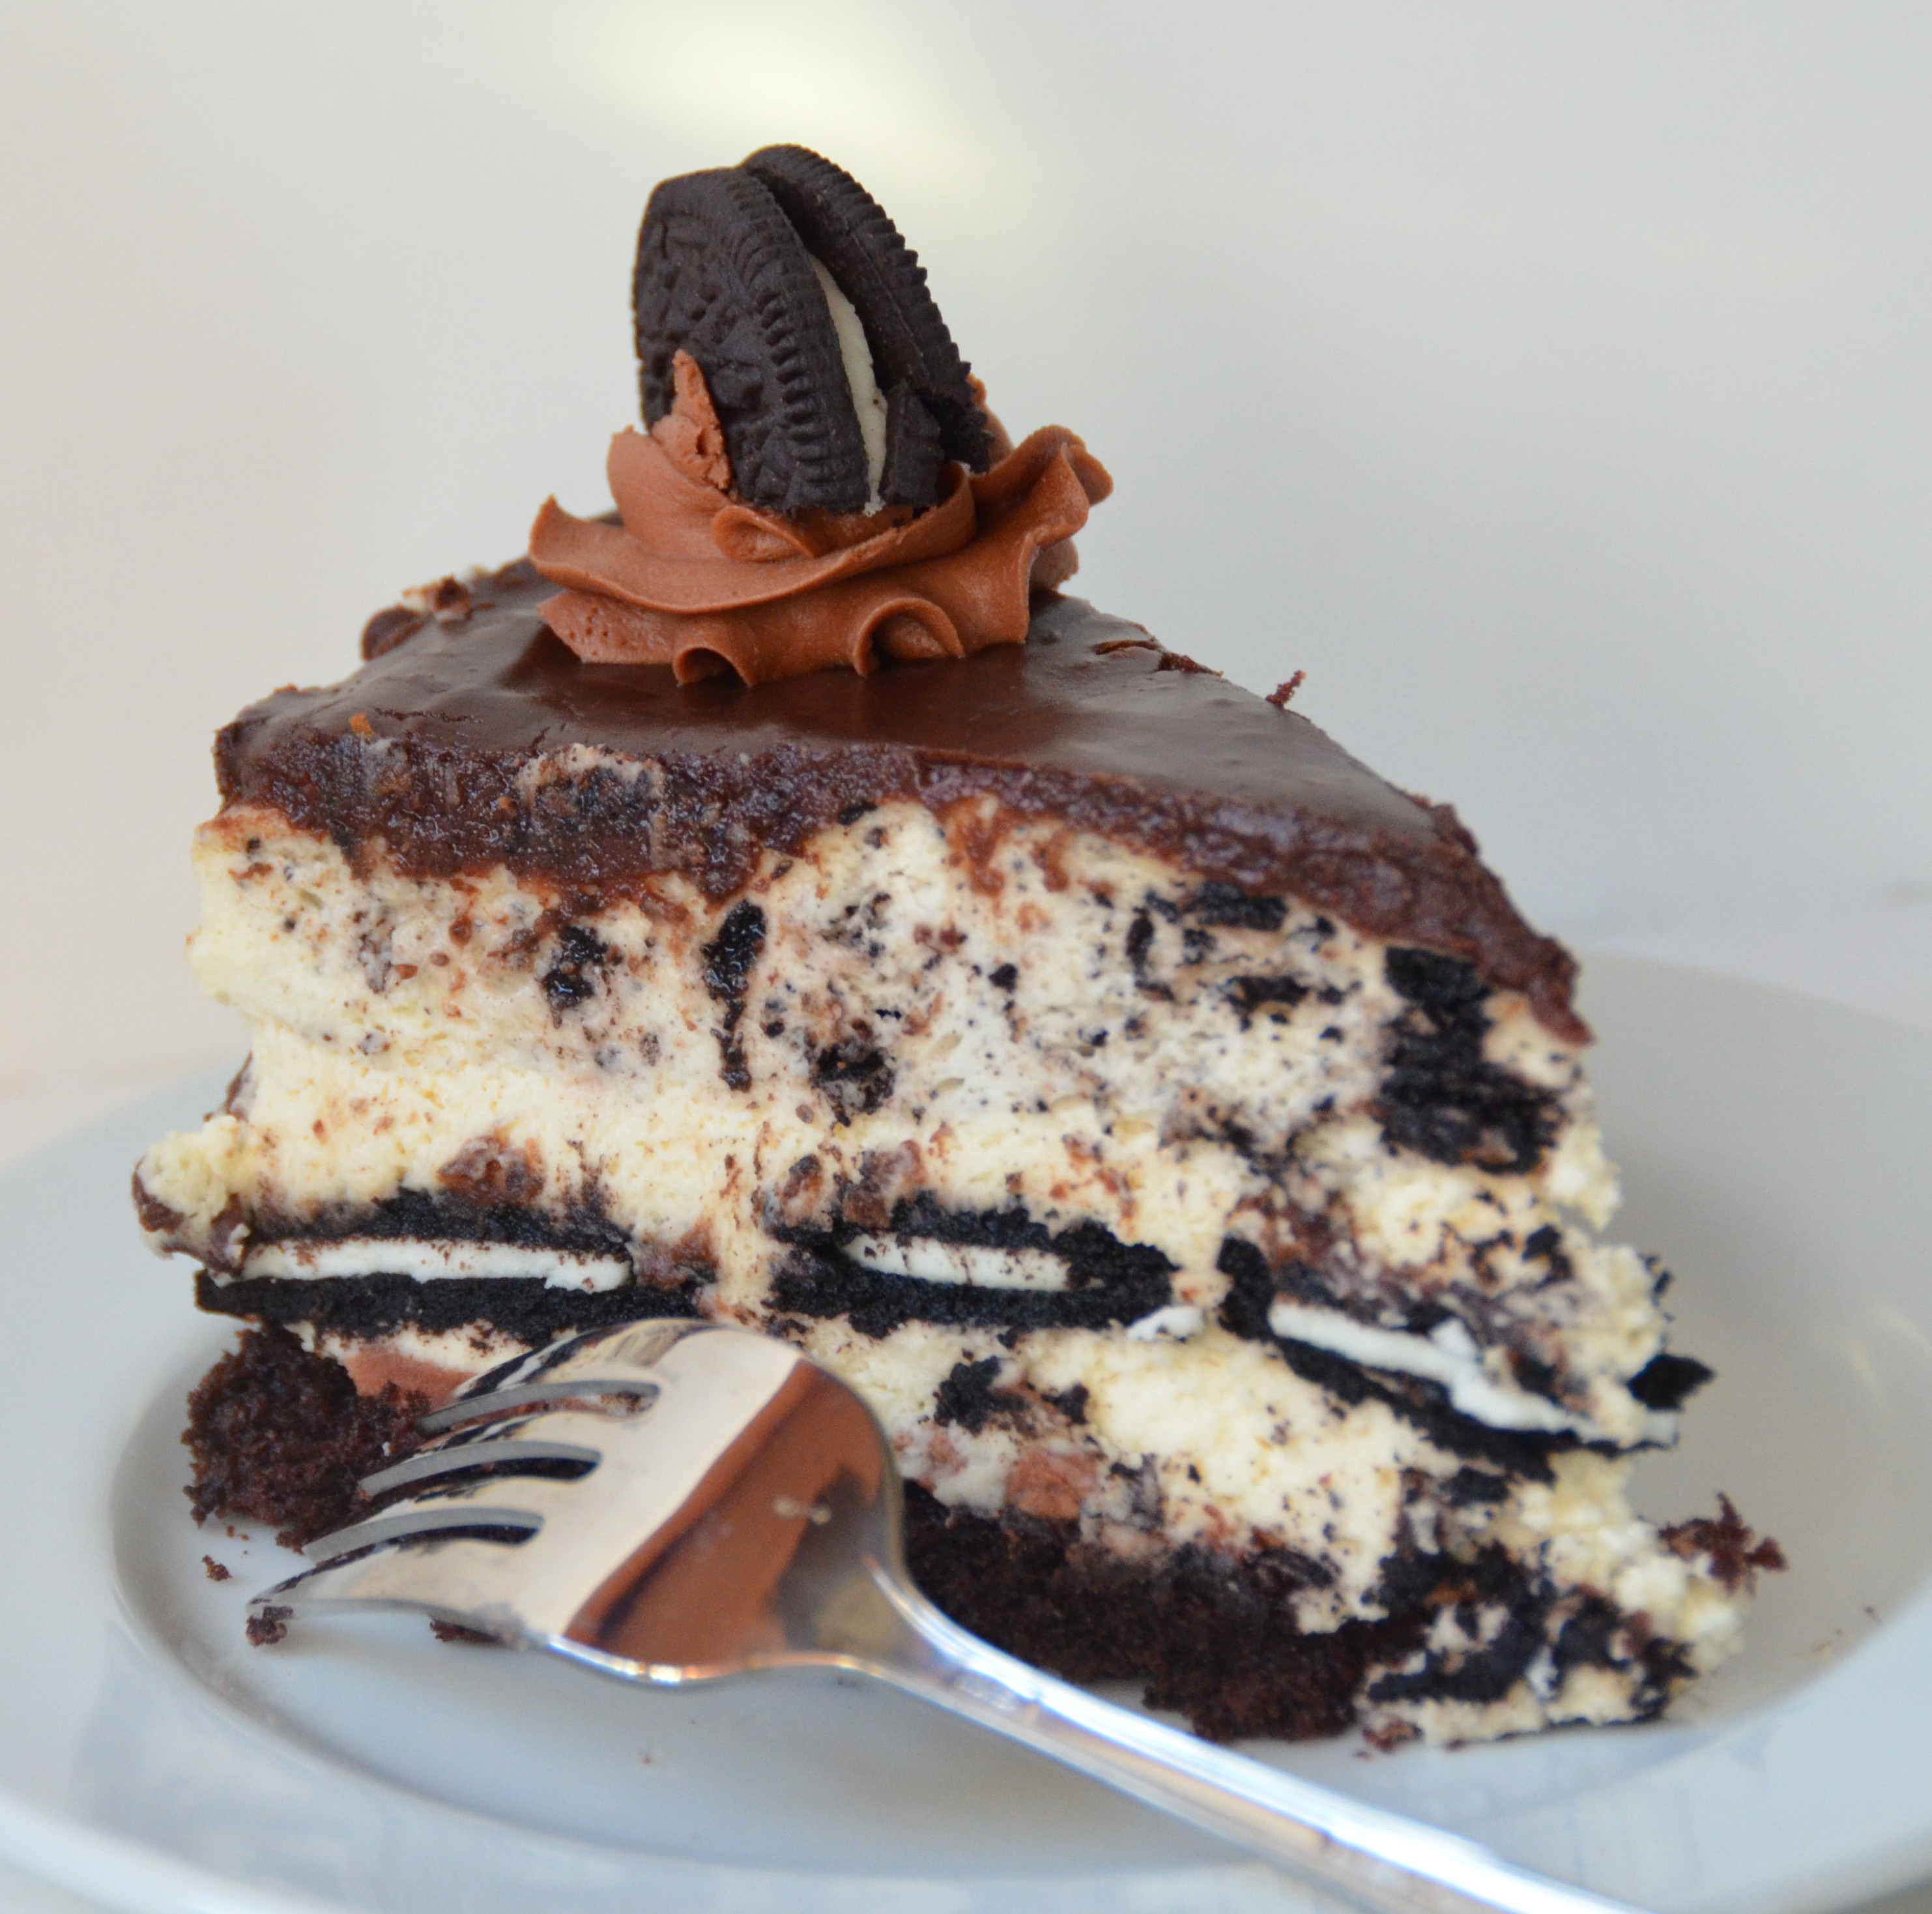 Oreo Cheesecake Recipe  Oreo Dream Extreme Cheesecake Extremely Good Song From